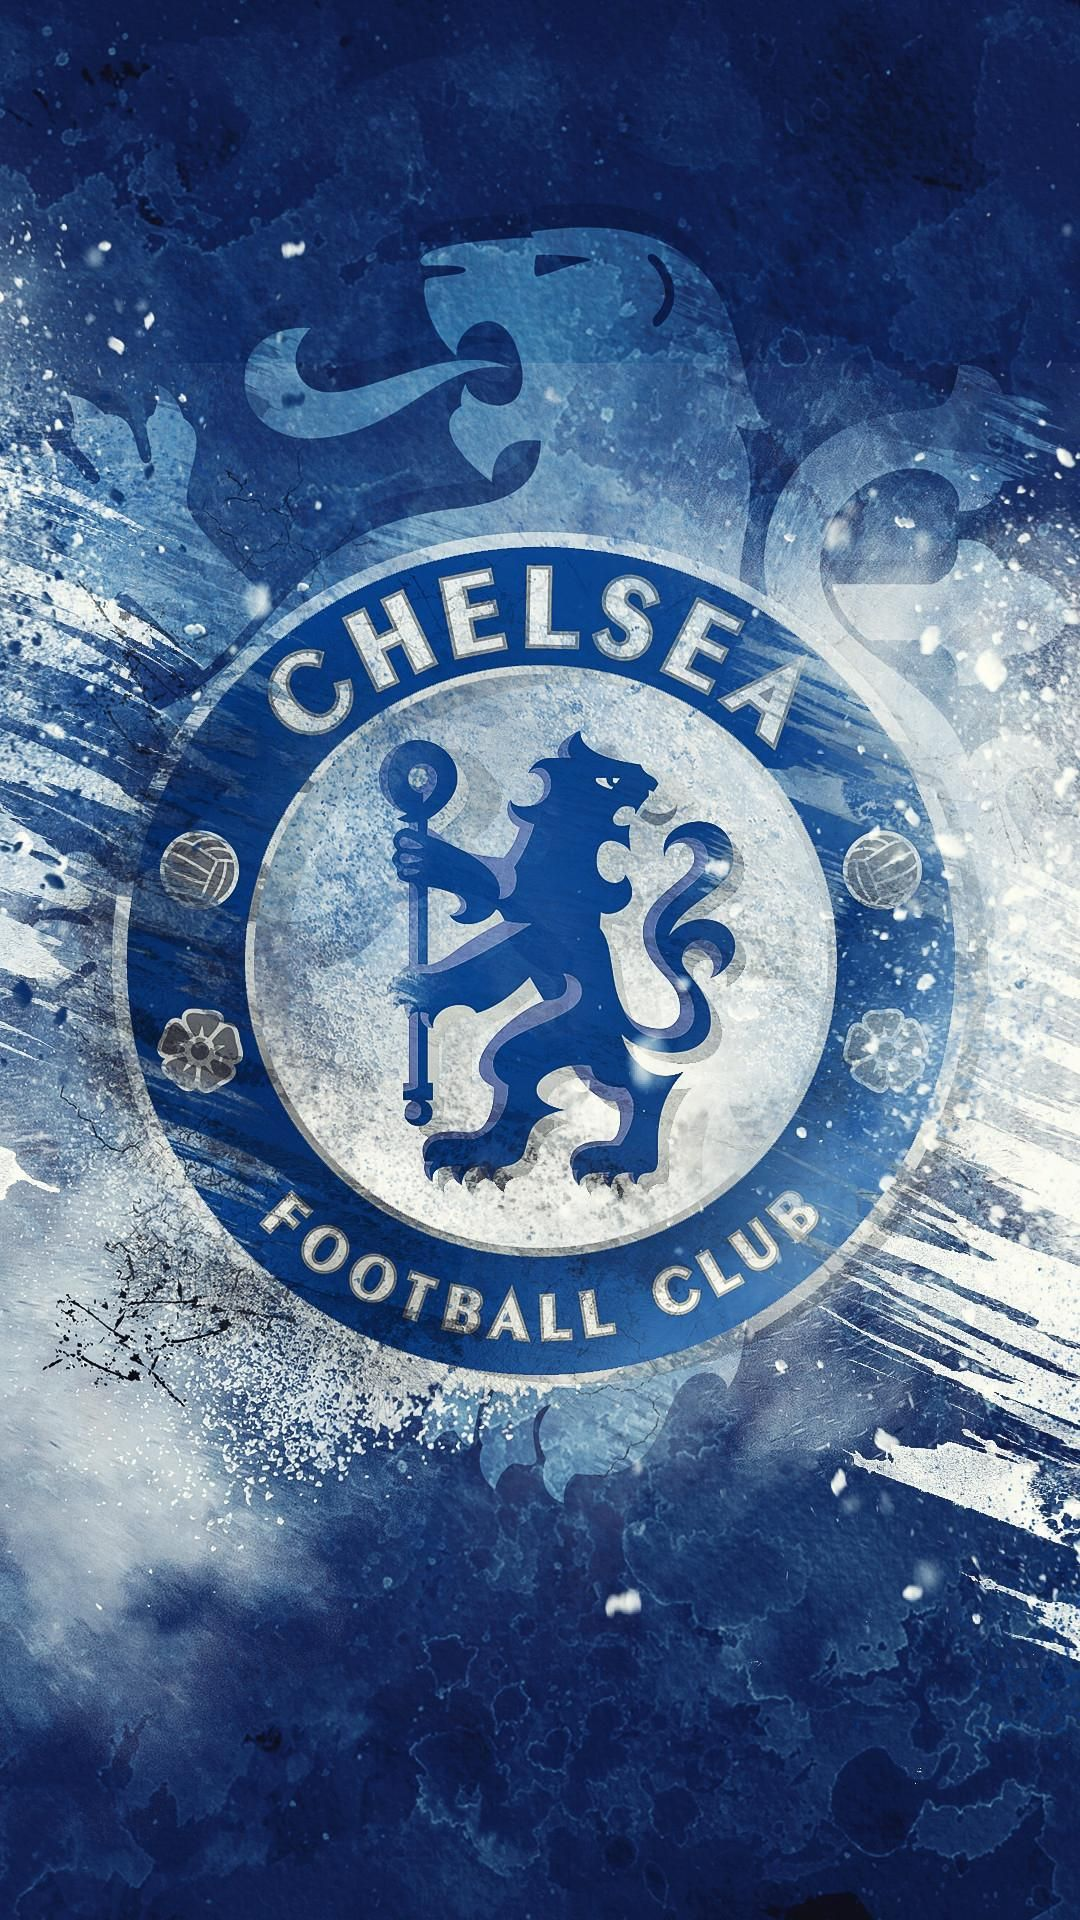 Pin By Olivia On Football Chelsea Wallpapers Chelsea Football Club Wallpapers